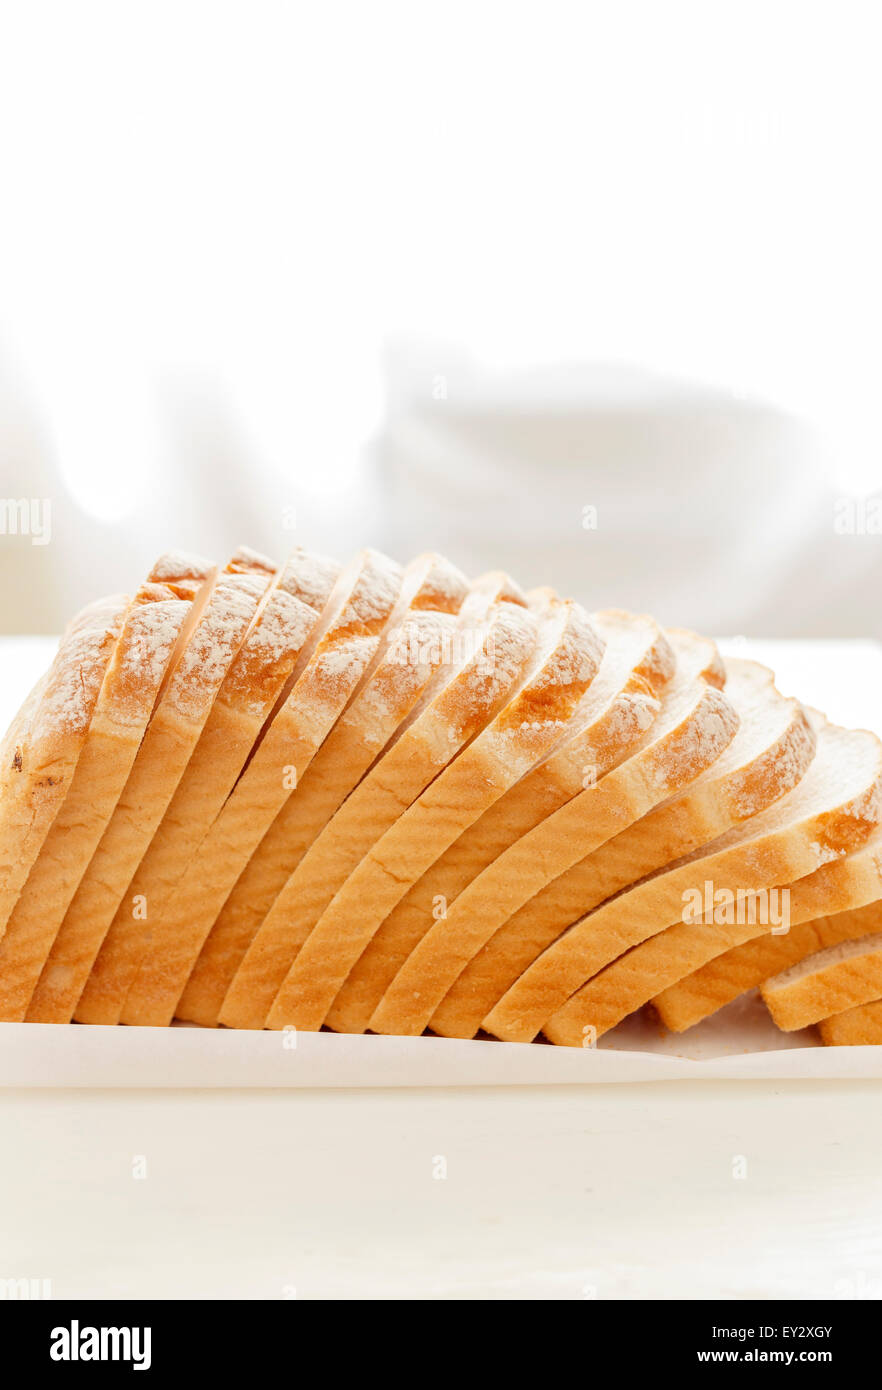 Falling slices of White Bread - Stock Image